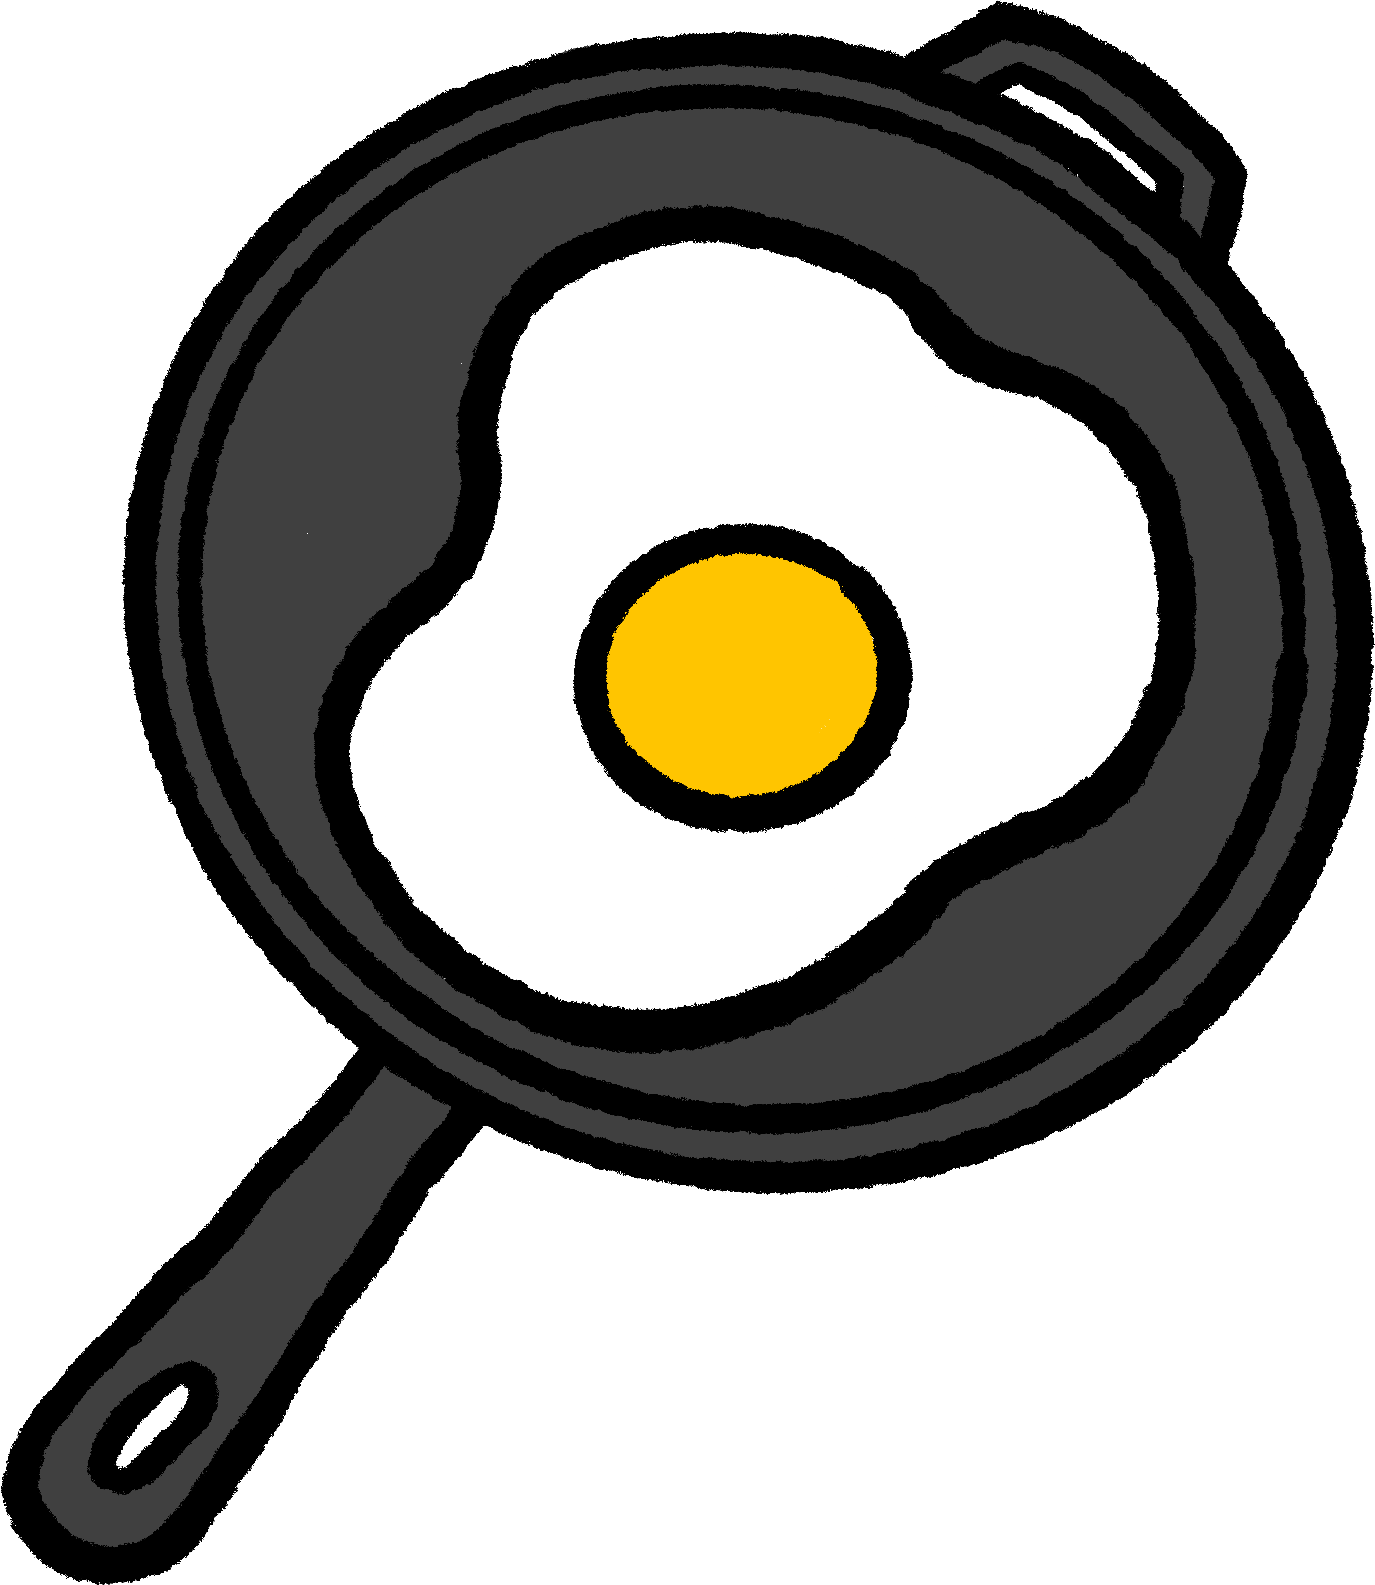 Illustration of a cast iron skillet frying an egg.